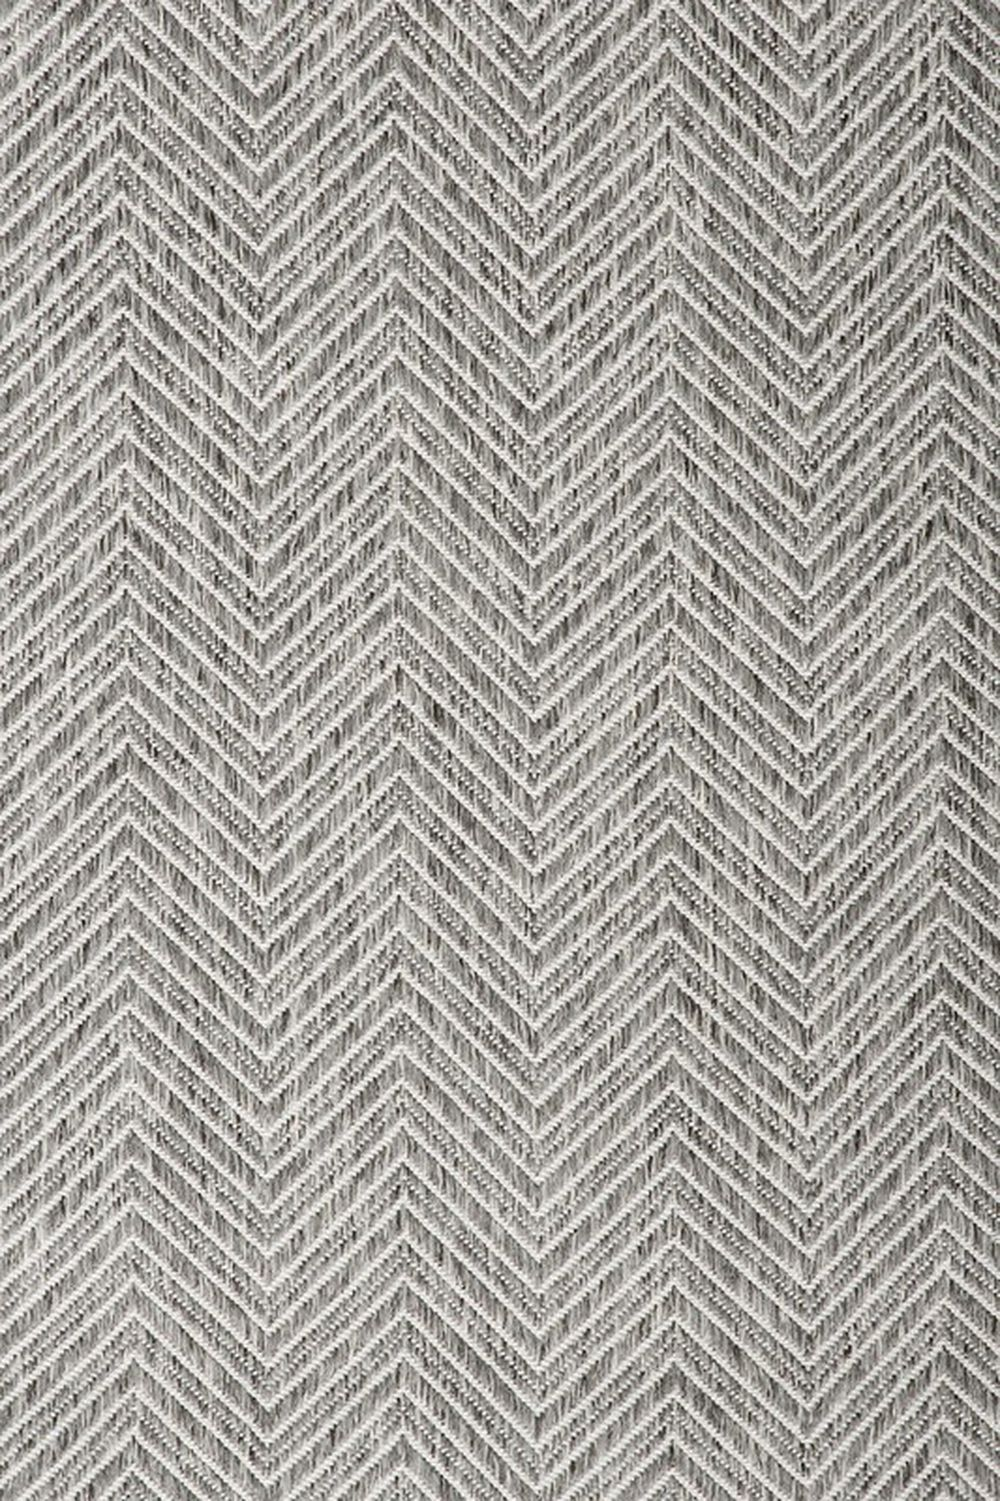 Photo of the fabric Madura Ash swatch by Mokum. Use for Upholstery Heavy Duty, Accessory. Style of Geometric, Texture